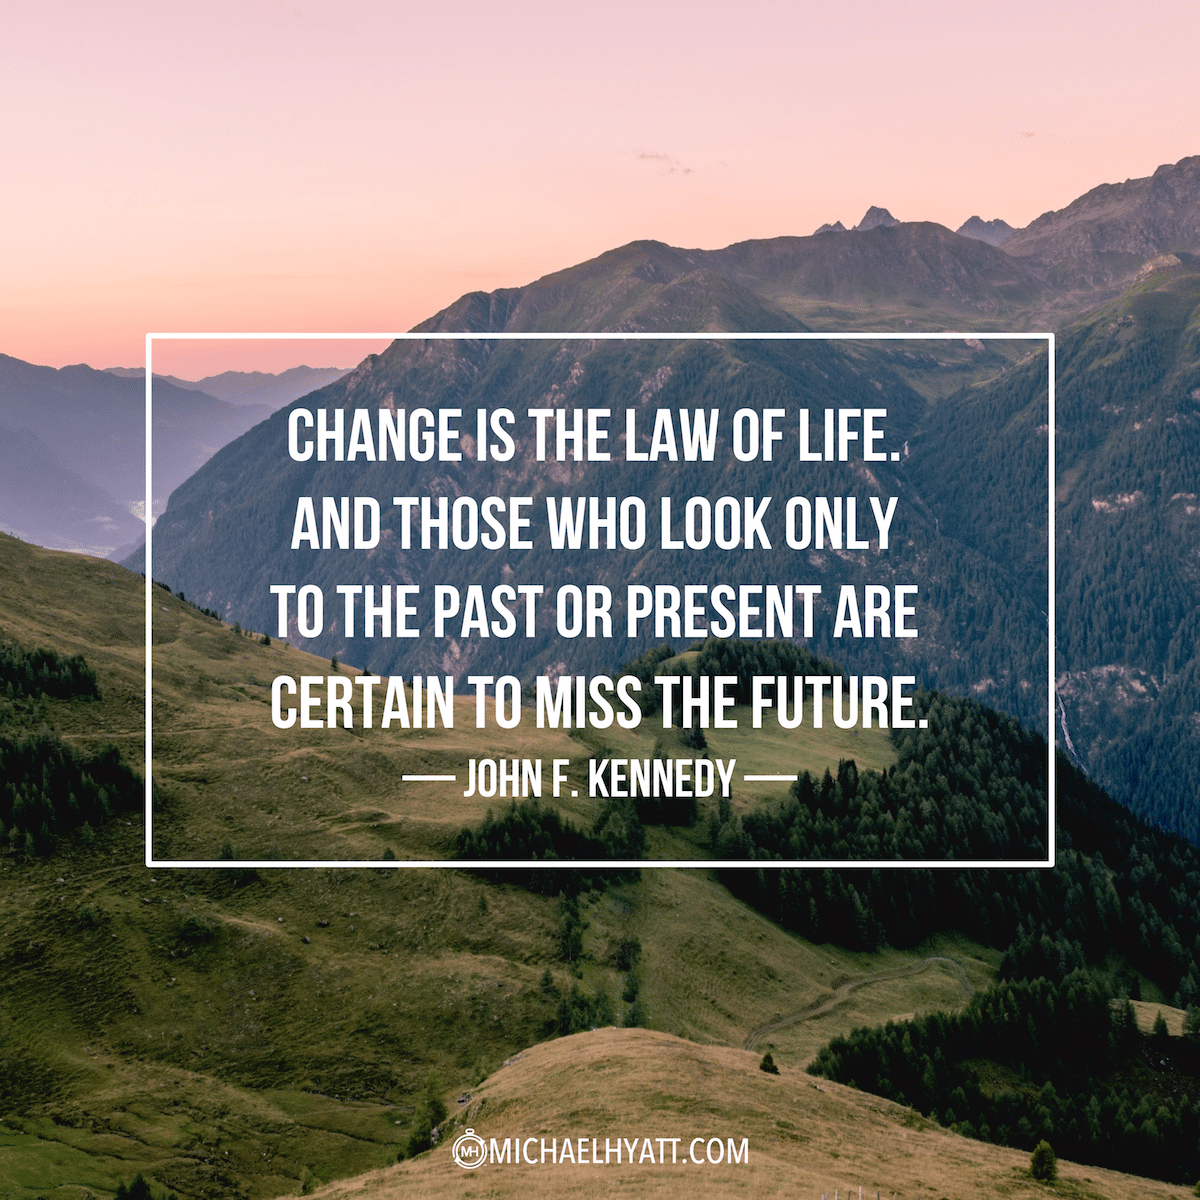 change is the law of life essay Search results change is the law of nature changed conditions of his life if the circumstance of a rich man change and he becomes poor, he should change.